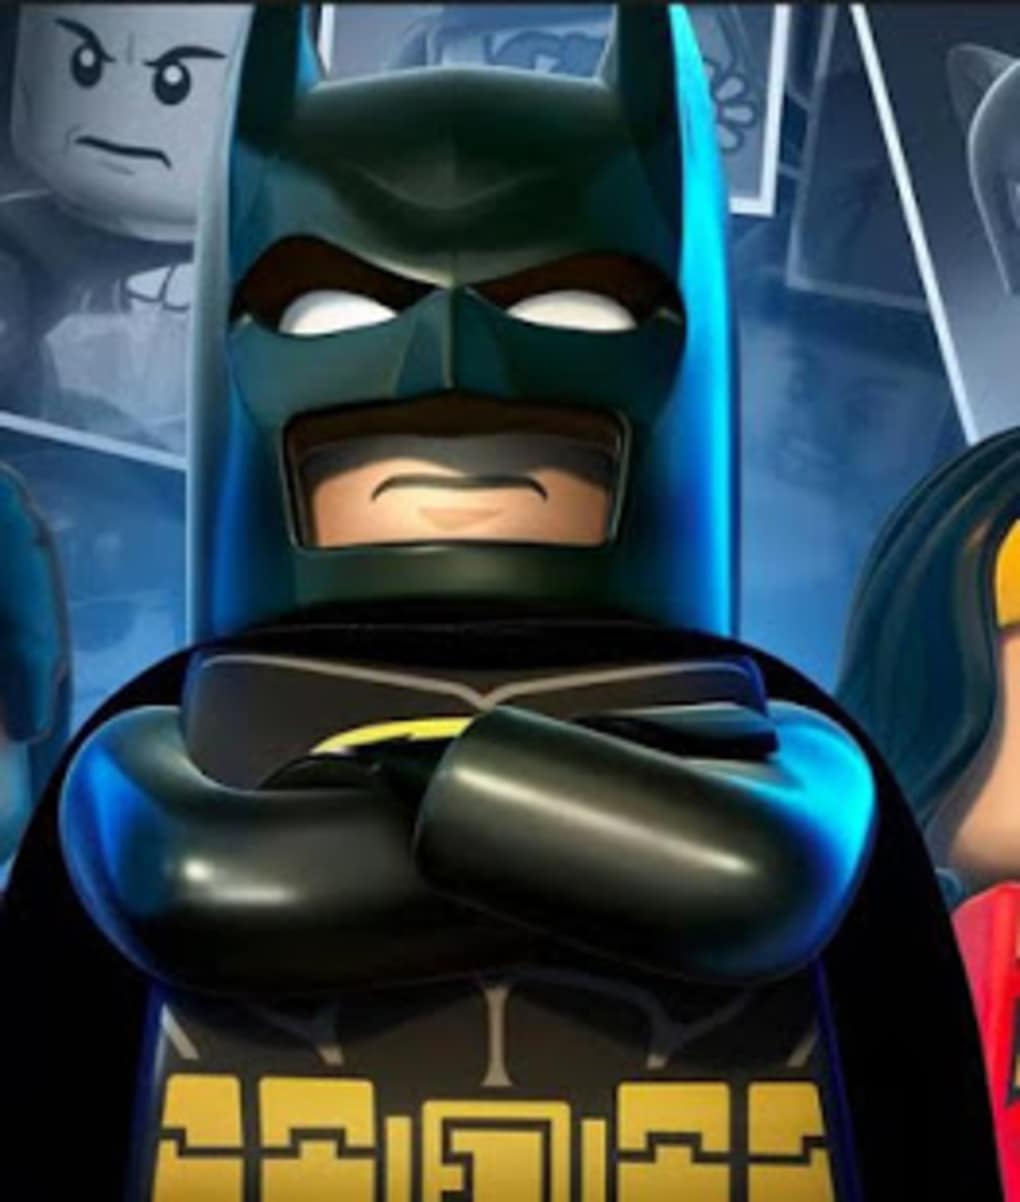 lego batman wallpapers hd for android download